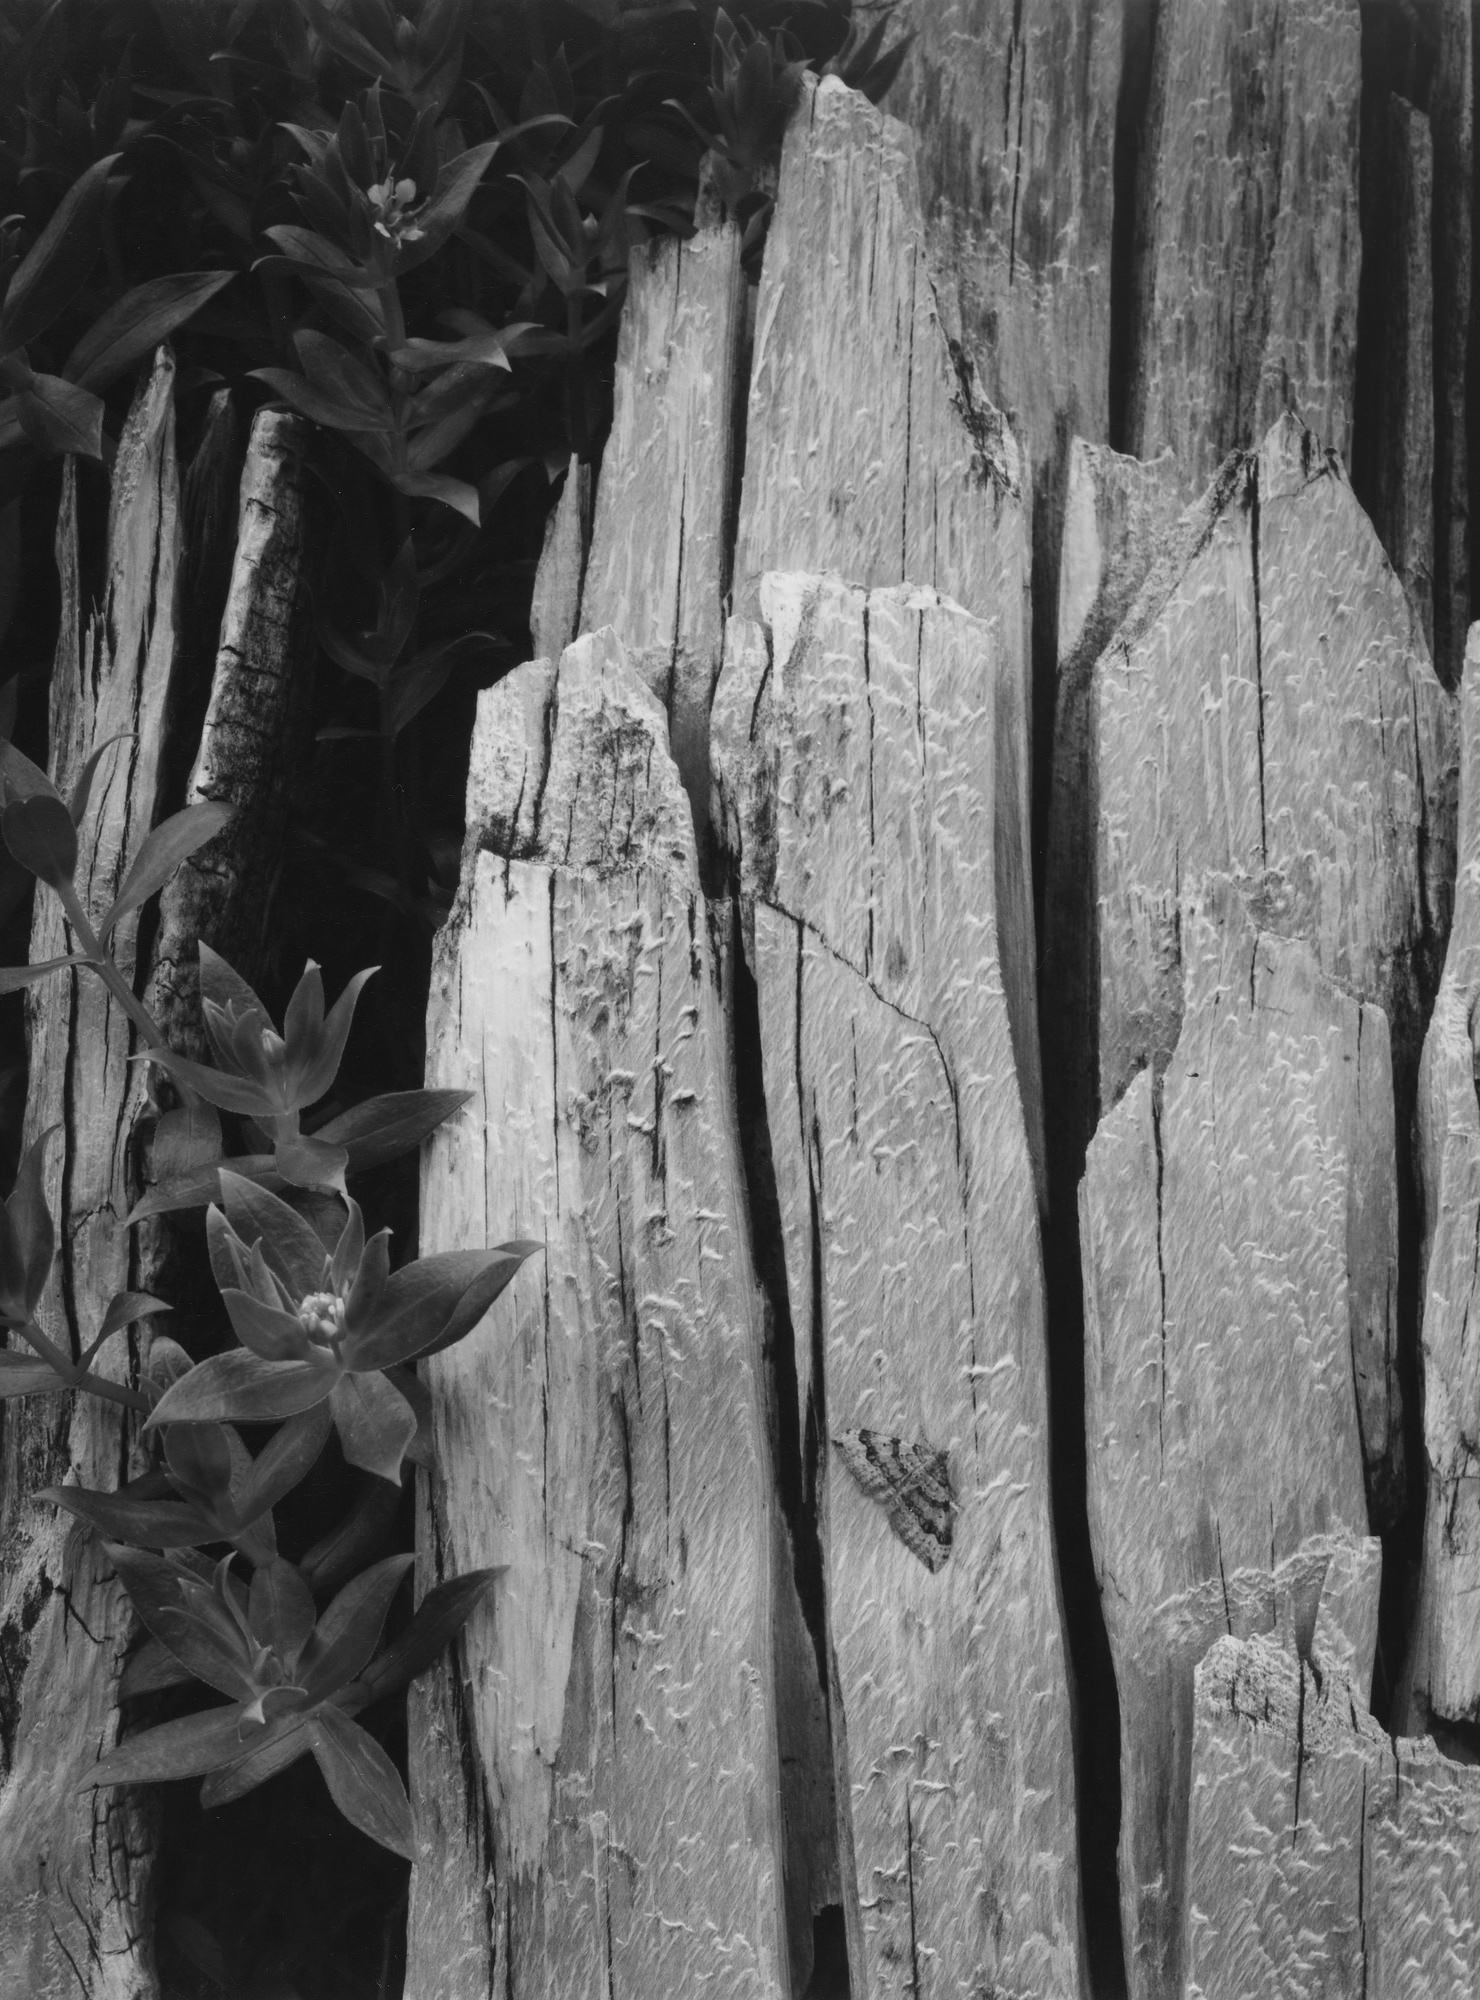 Ansel Adams Moth And Stump Interglacial Forest Glacier Bay National Monument Alaska 1949